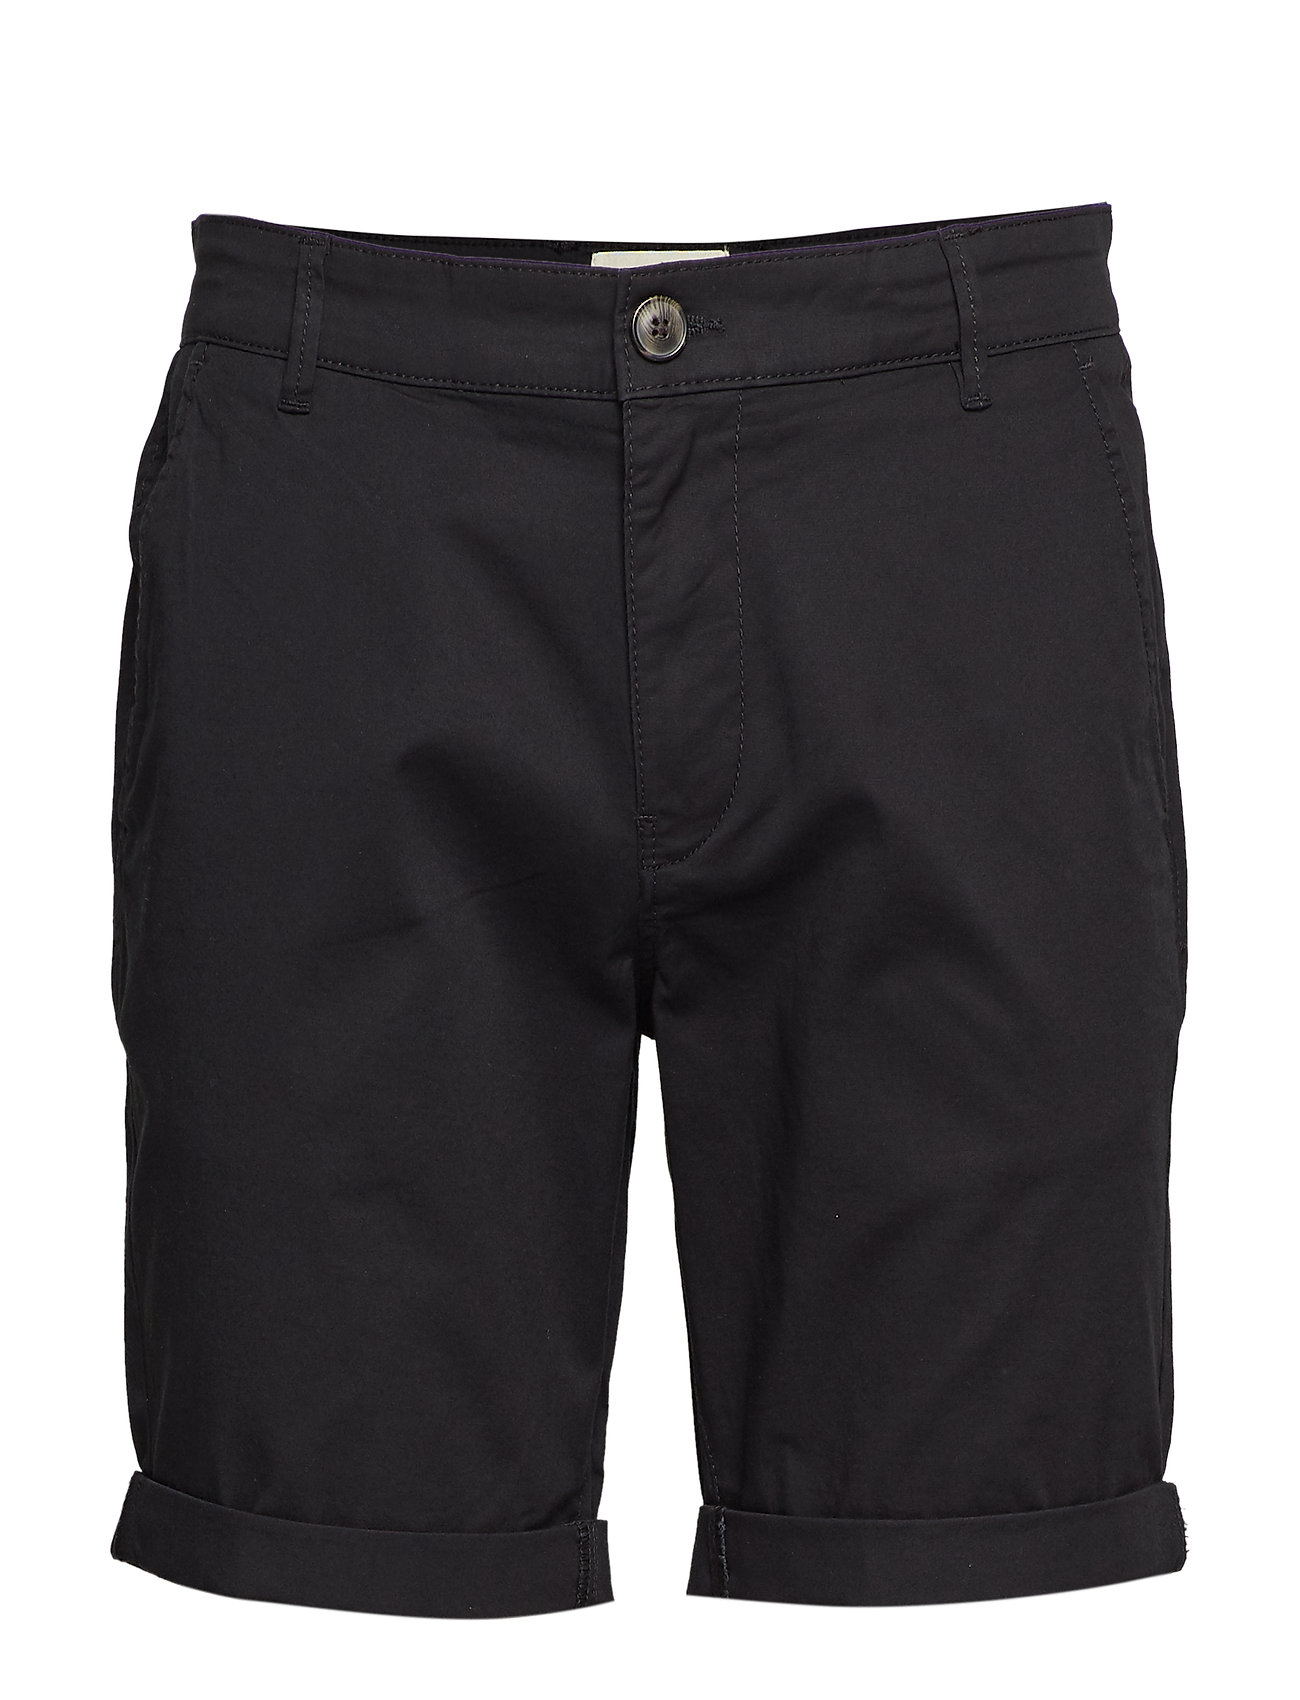 Selected Homme - SLHSTRAIGHT-PARIS SHORTS W NOOS - chino's shorts - black - 0